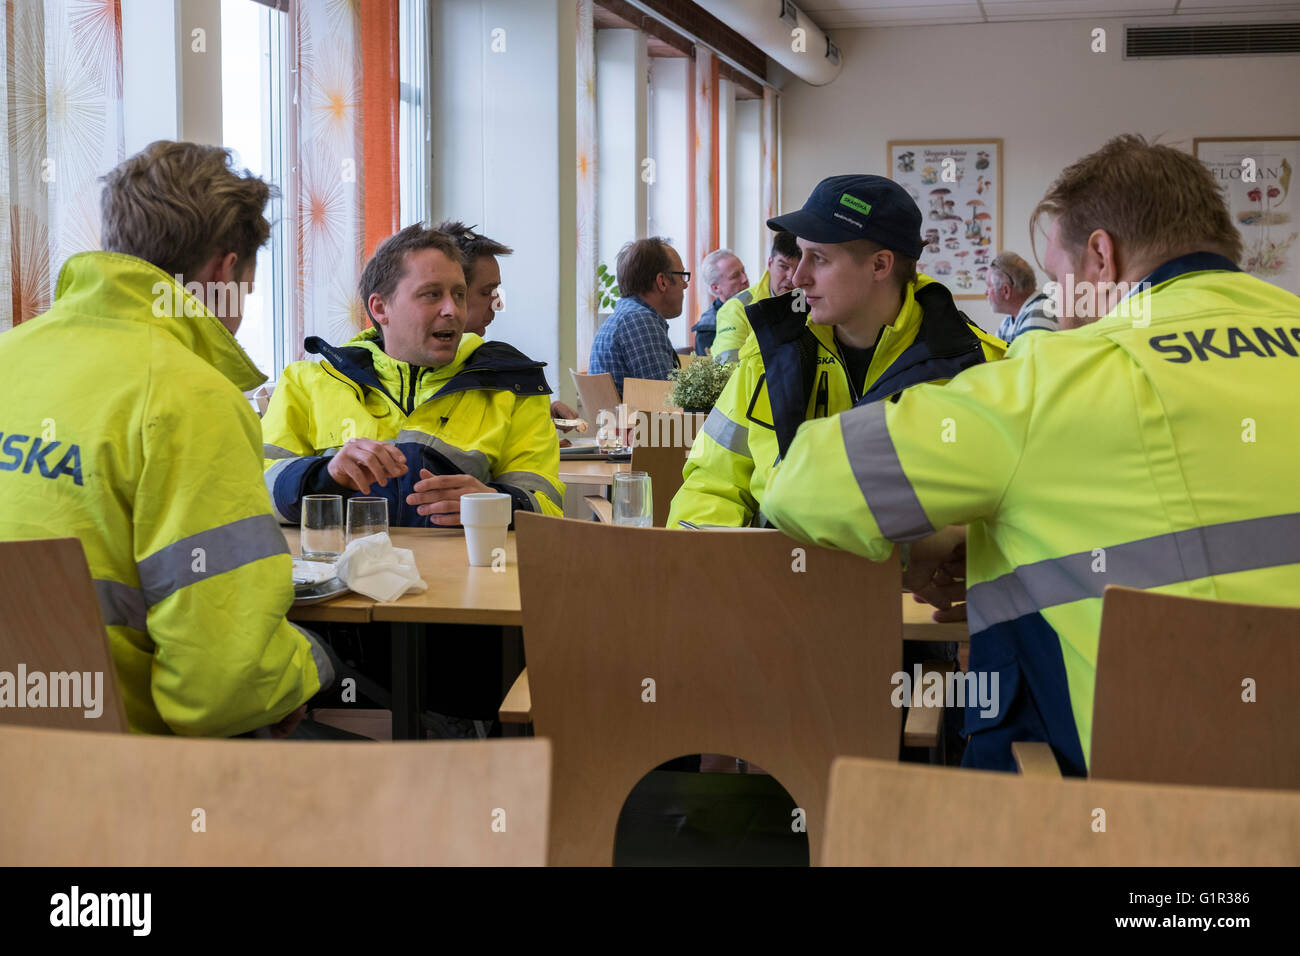 Canteen for workers - Stock Image